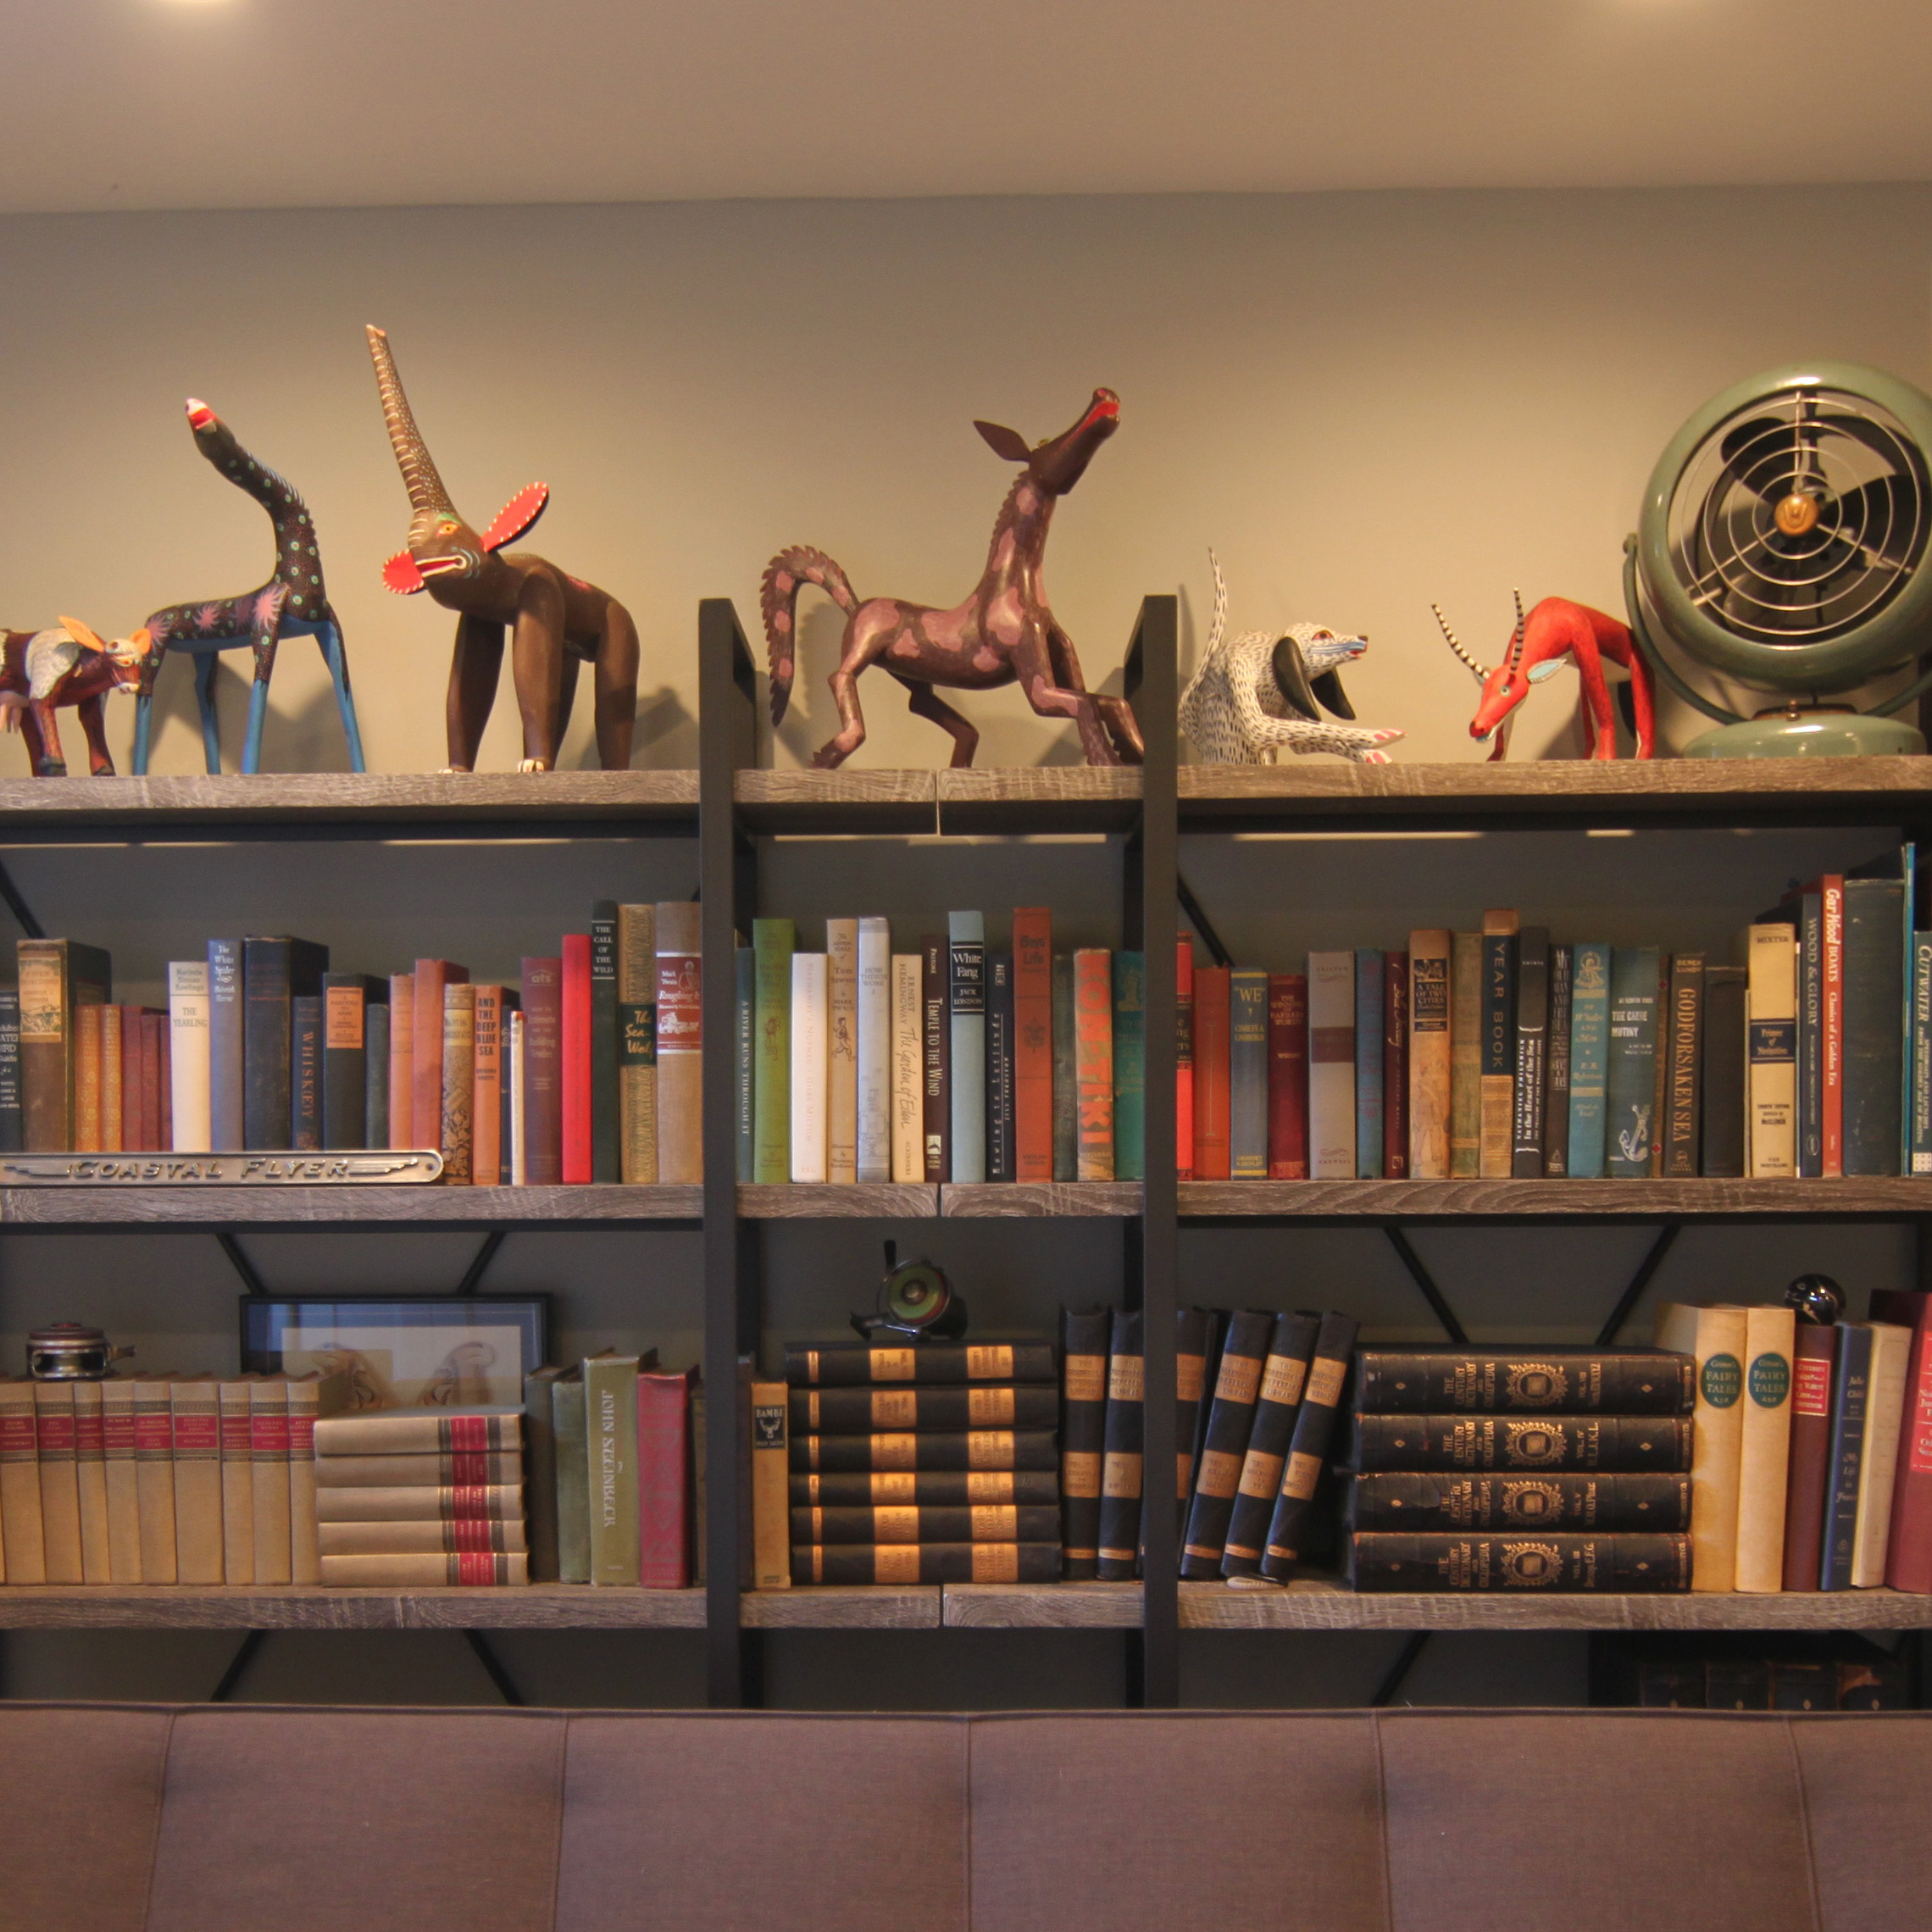 I finally found a place for all my Oaxacan animals that I have been collecting for decades that have spent most of their life in boxes. Lance's collection of vintage books found a home too.